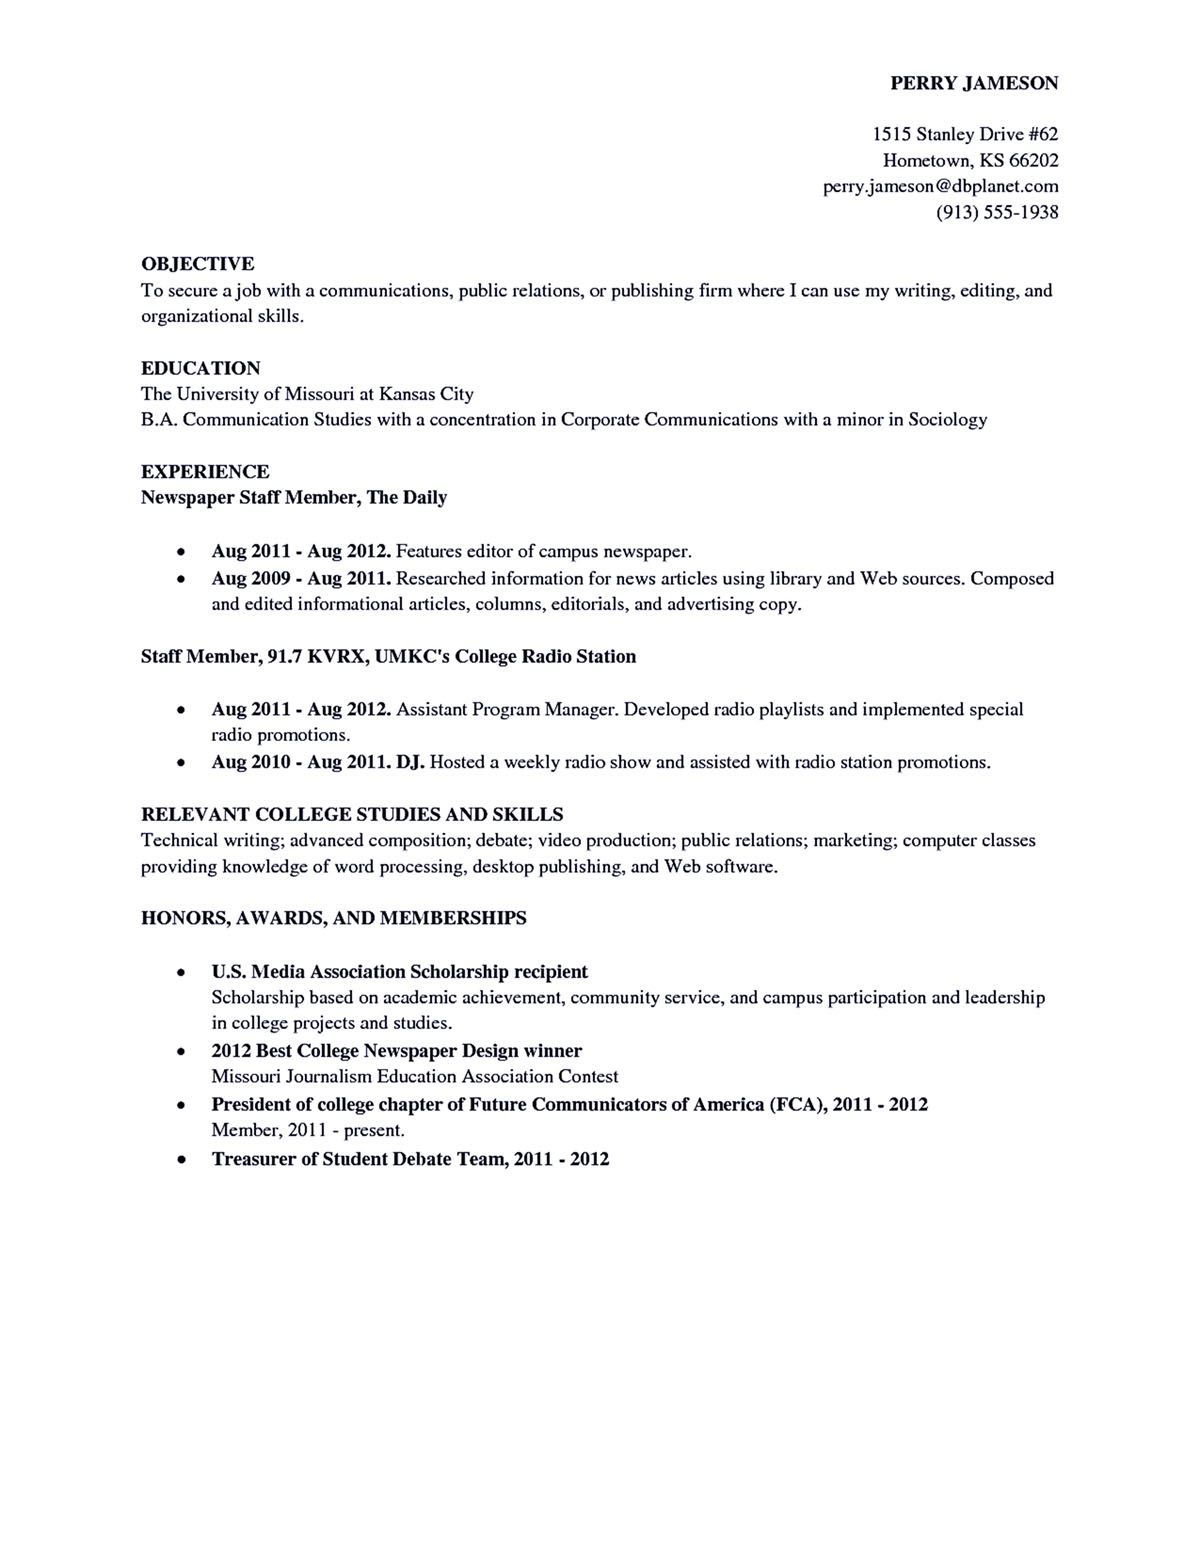 Academic Resume Template Academic Cv Template Doc Academic Resume Sample Shows You How To